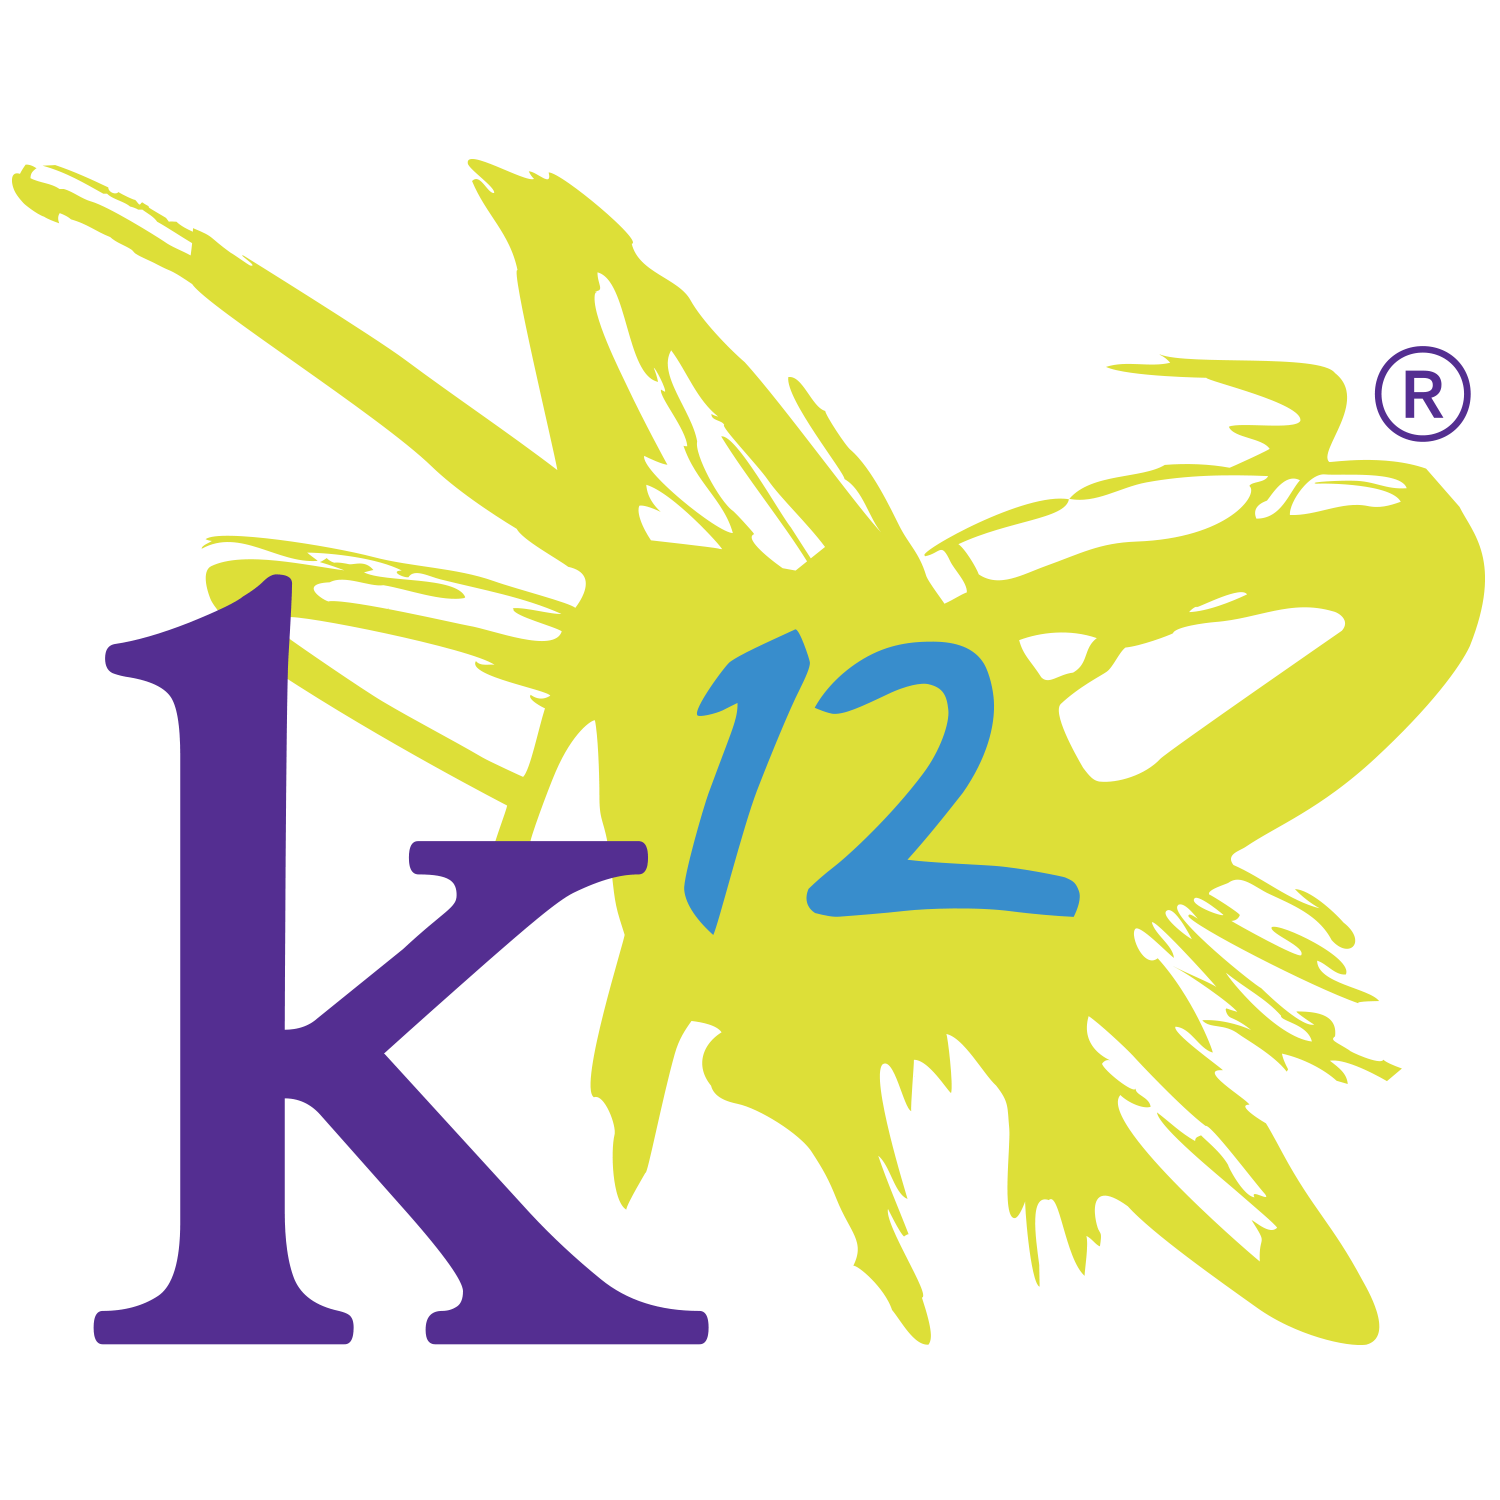 K12 Significantly Undervalued With 97 Upside